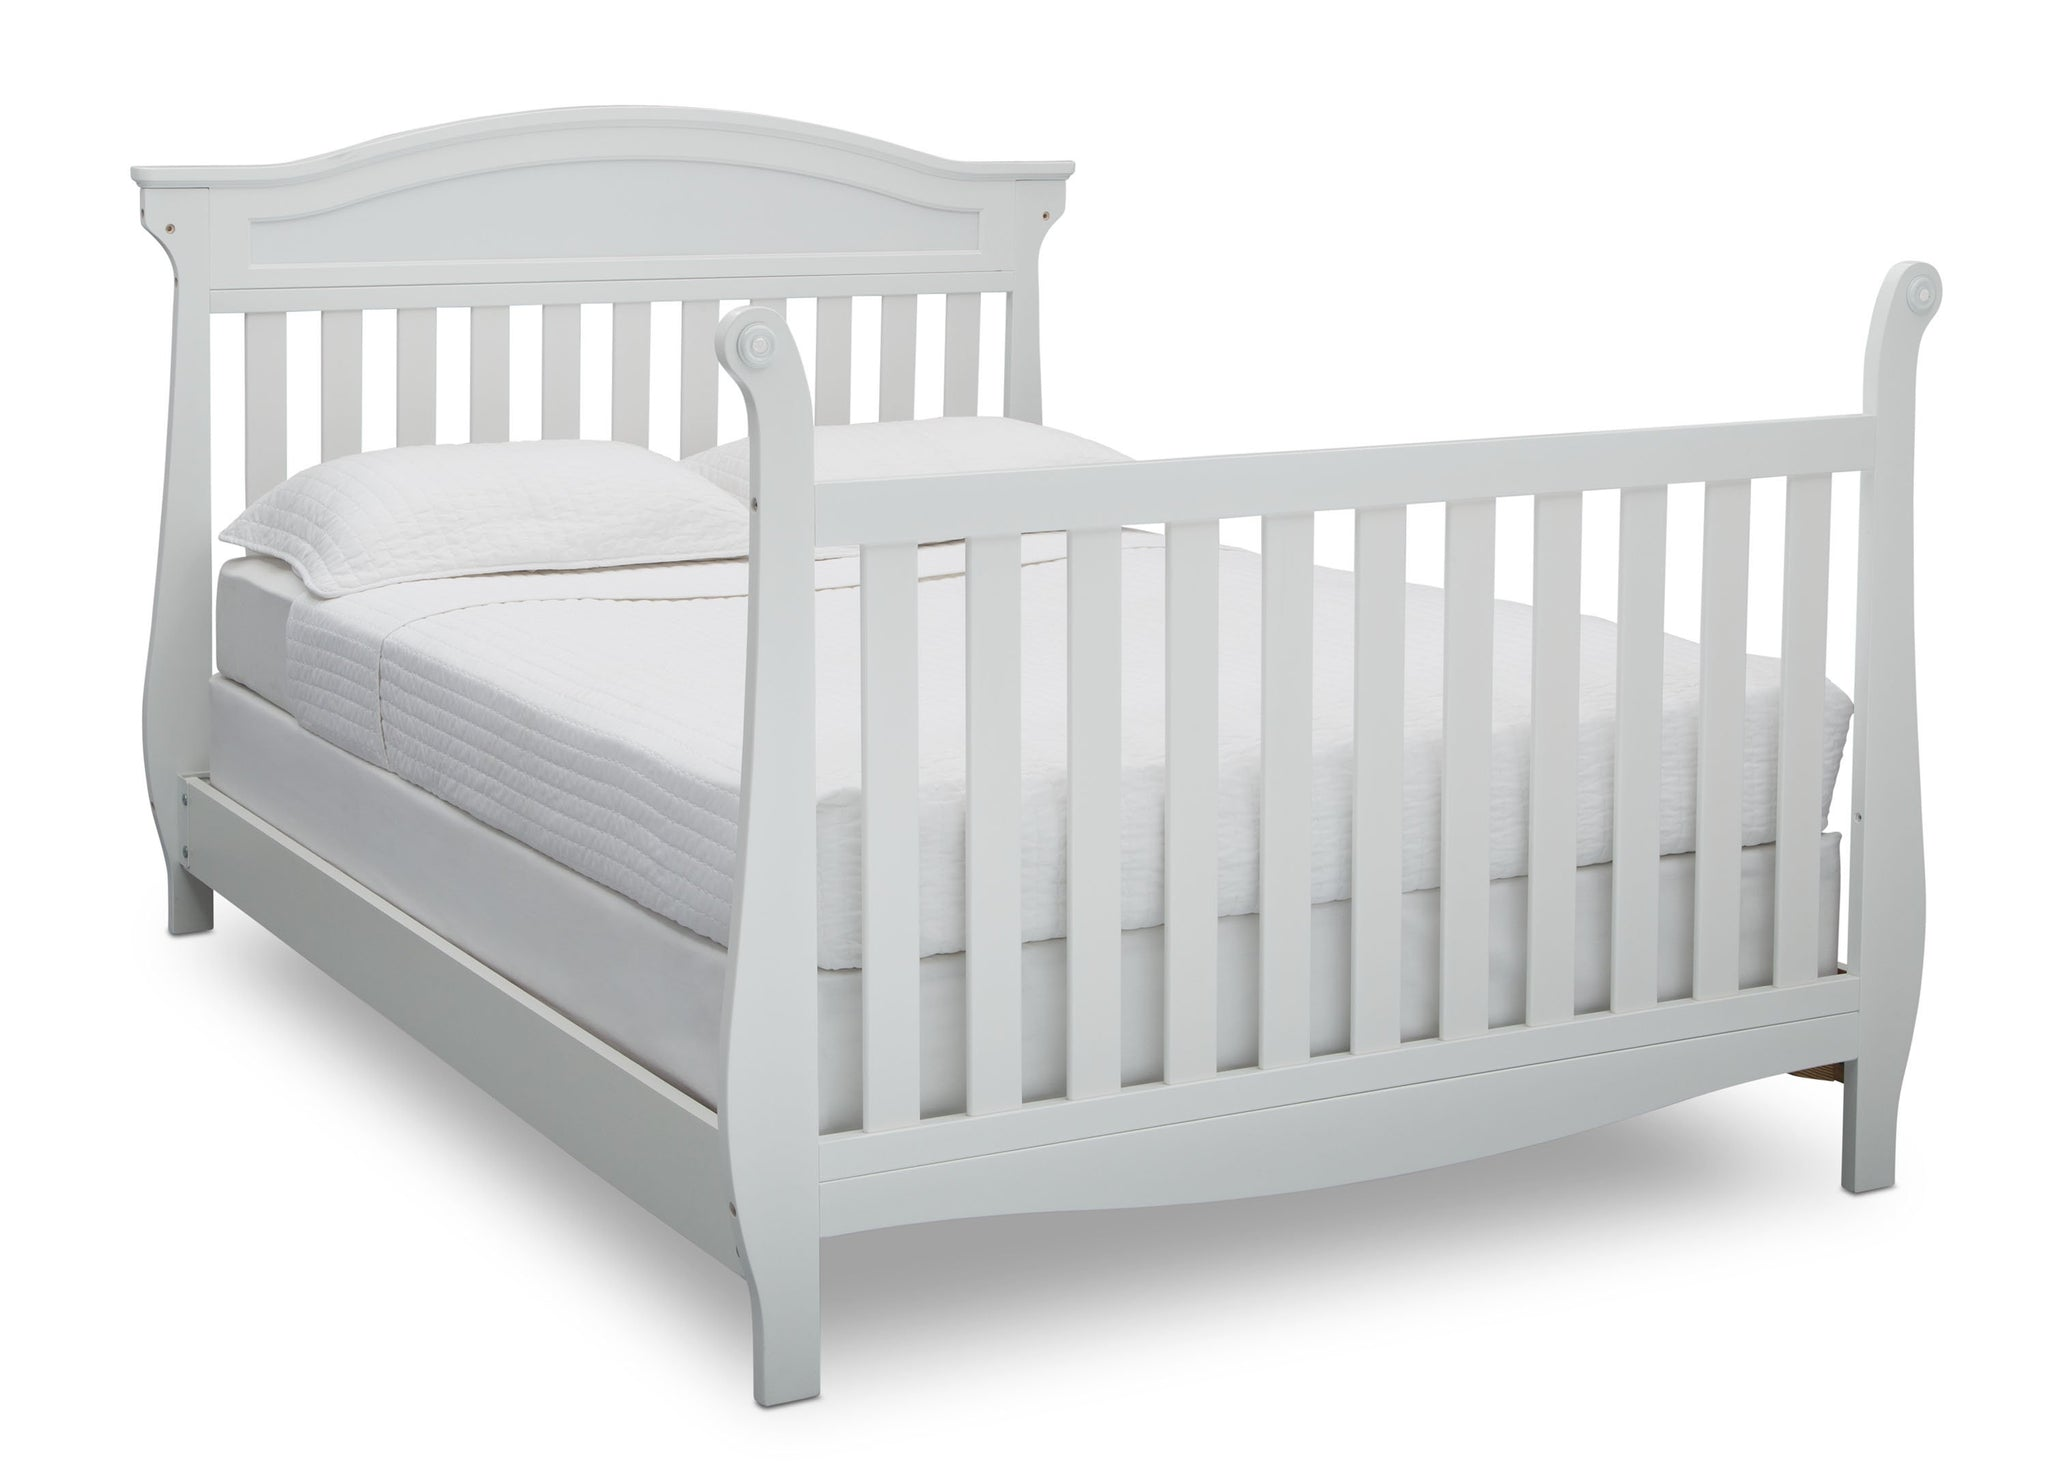 Delta Children Bianca White (130) Lancaster 4-in-1 Convertible Crib (552150), Full Bed with Footboard, b5b